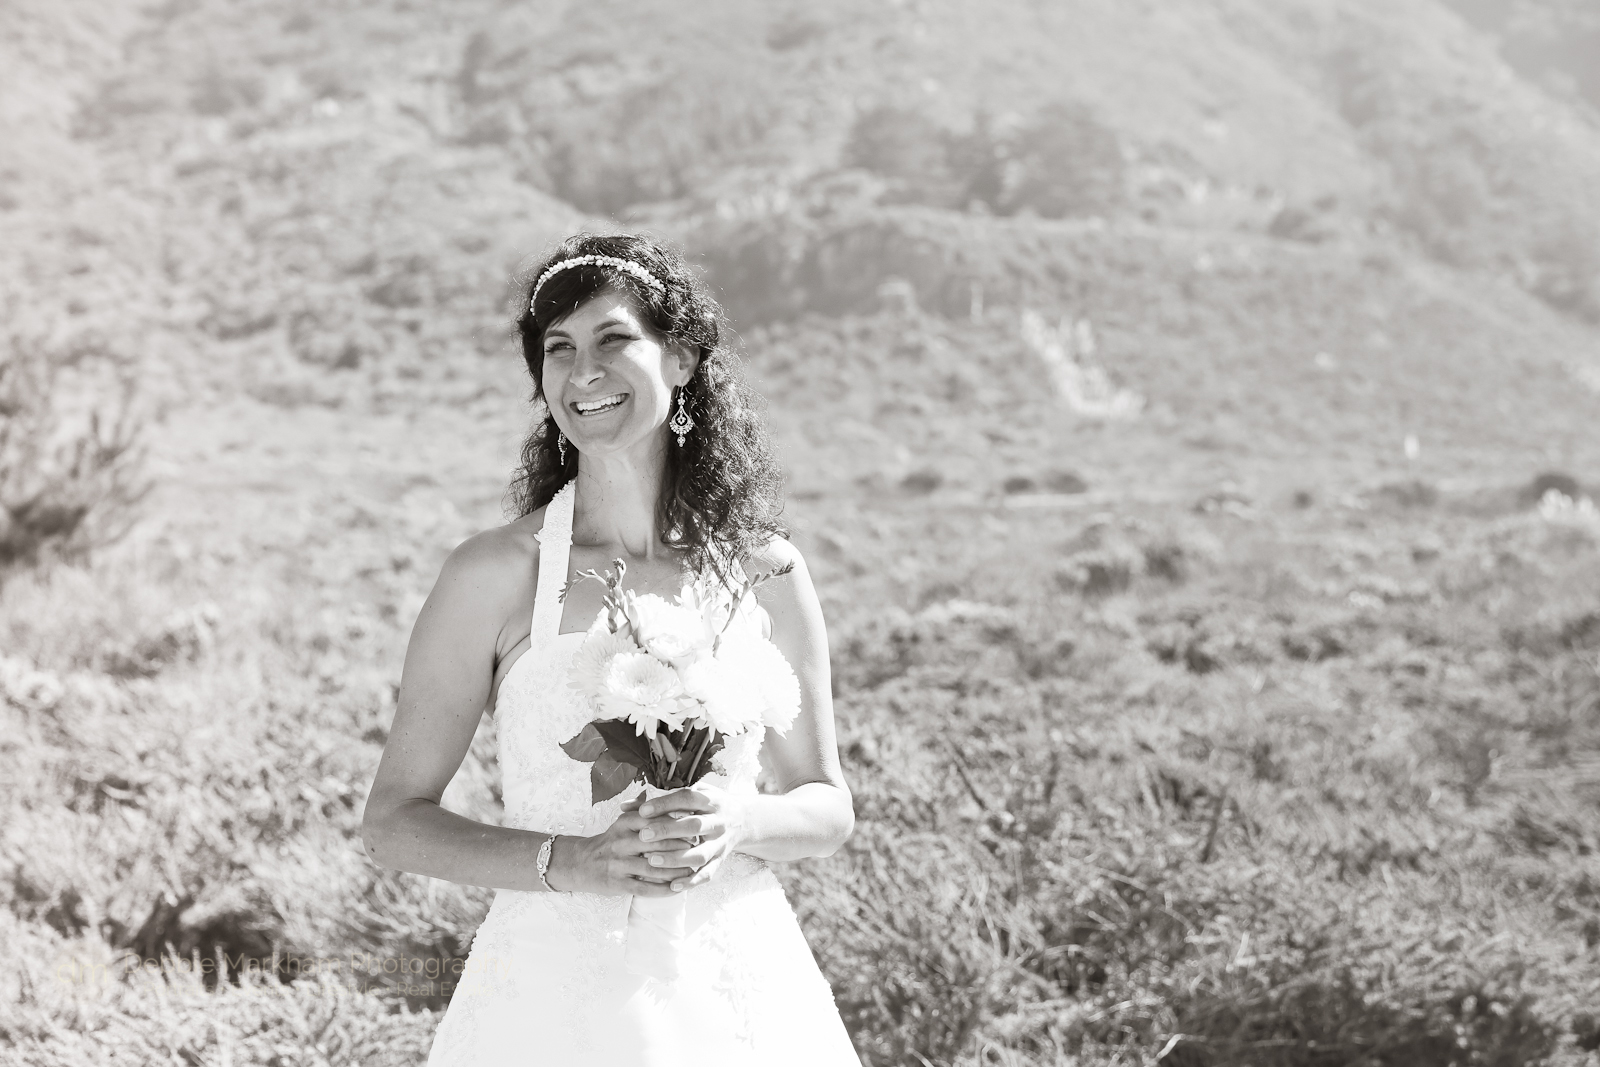 destination-wedding_small-wedding_big-sur_california-coast_ocean-view_gorda_wedding-photographer_debbie-markham-4222